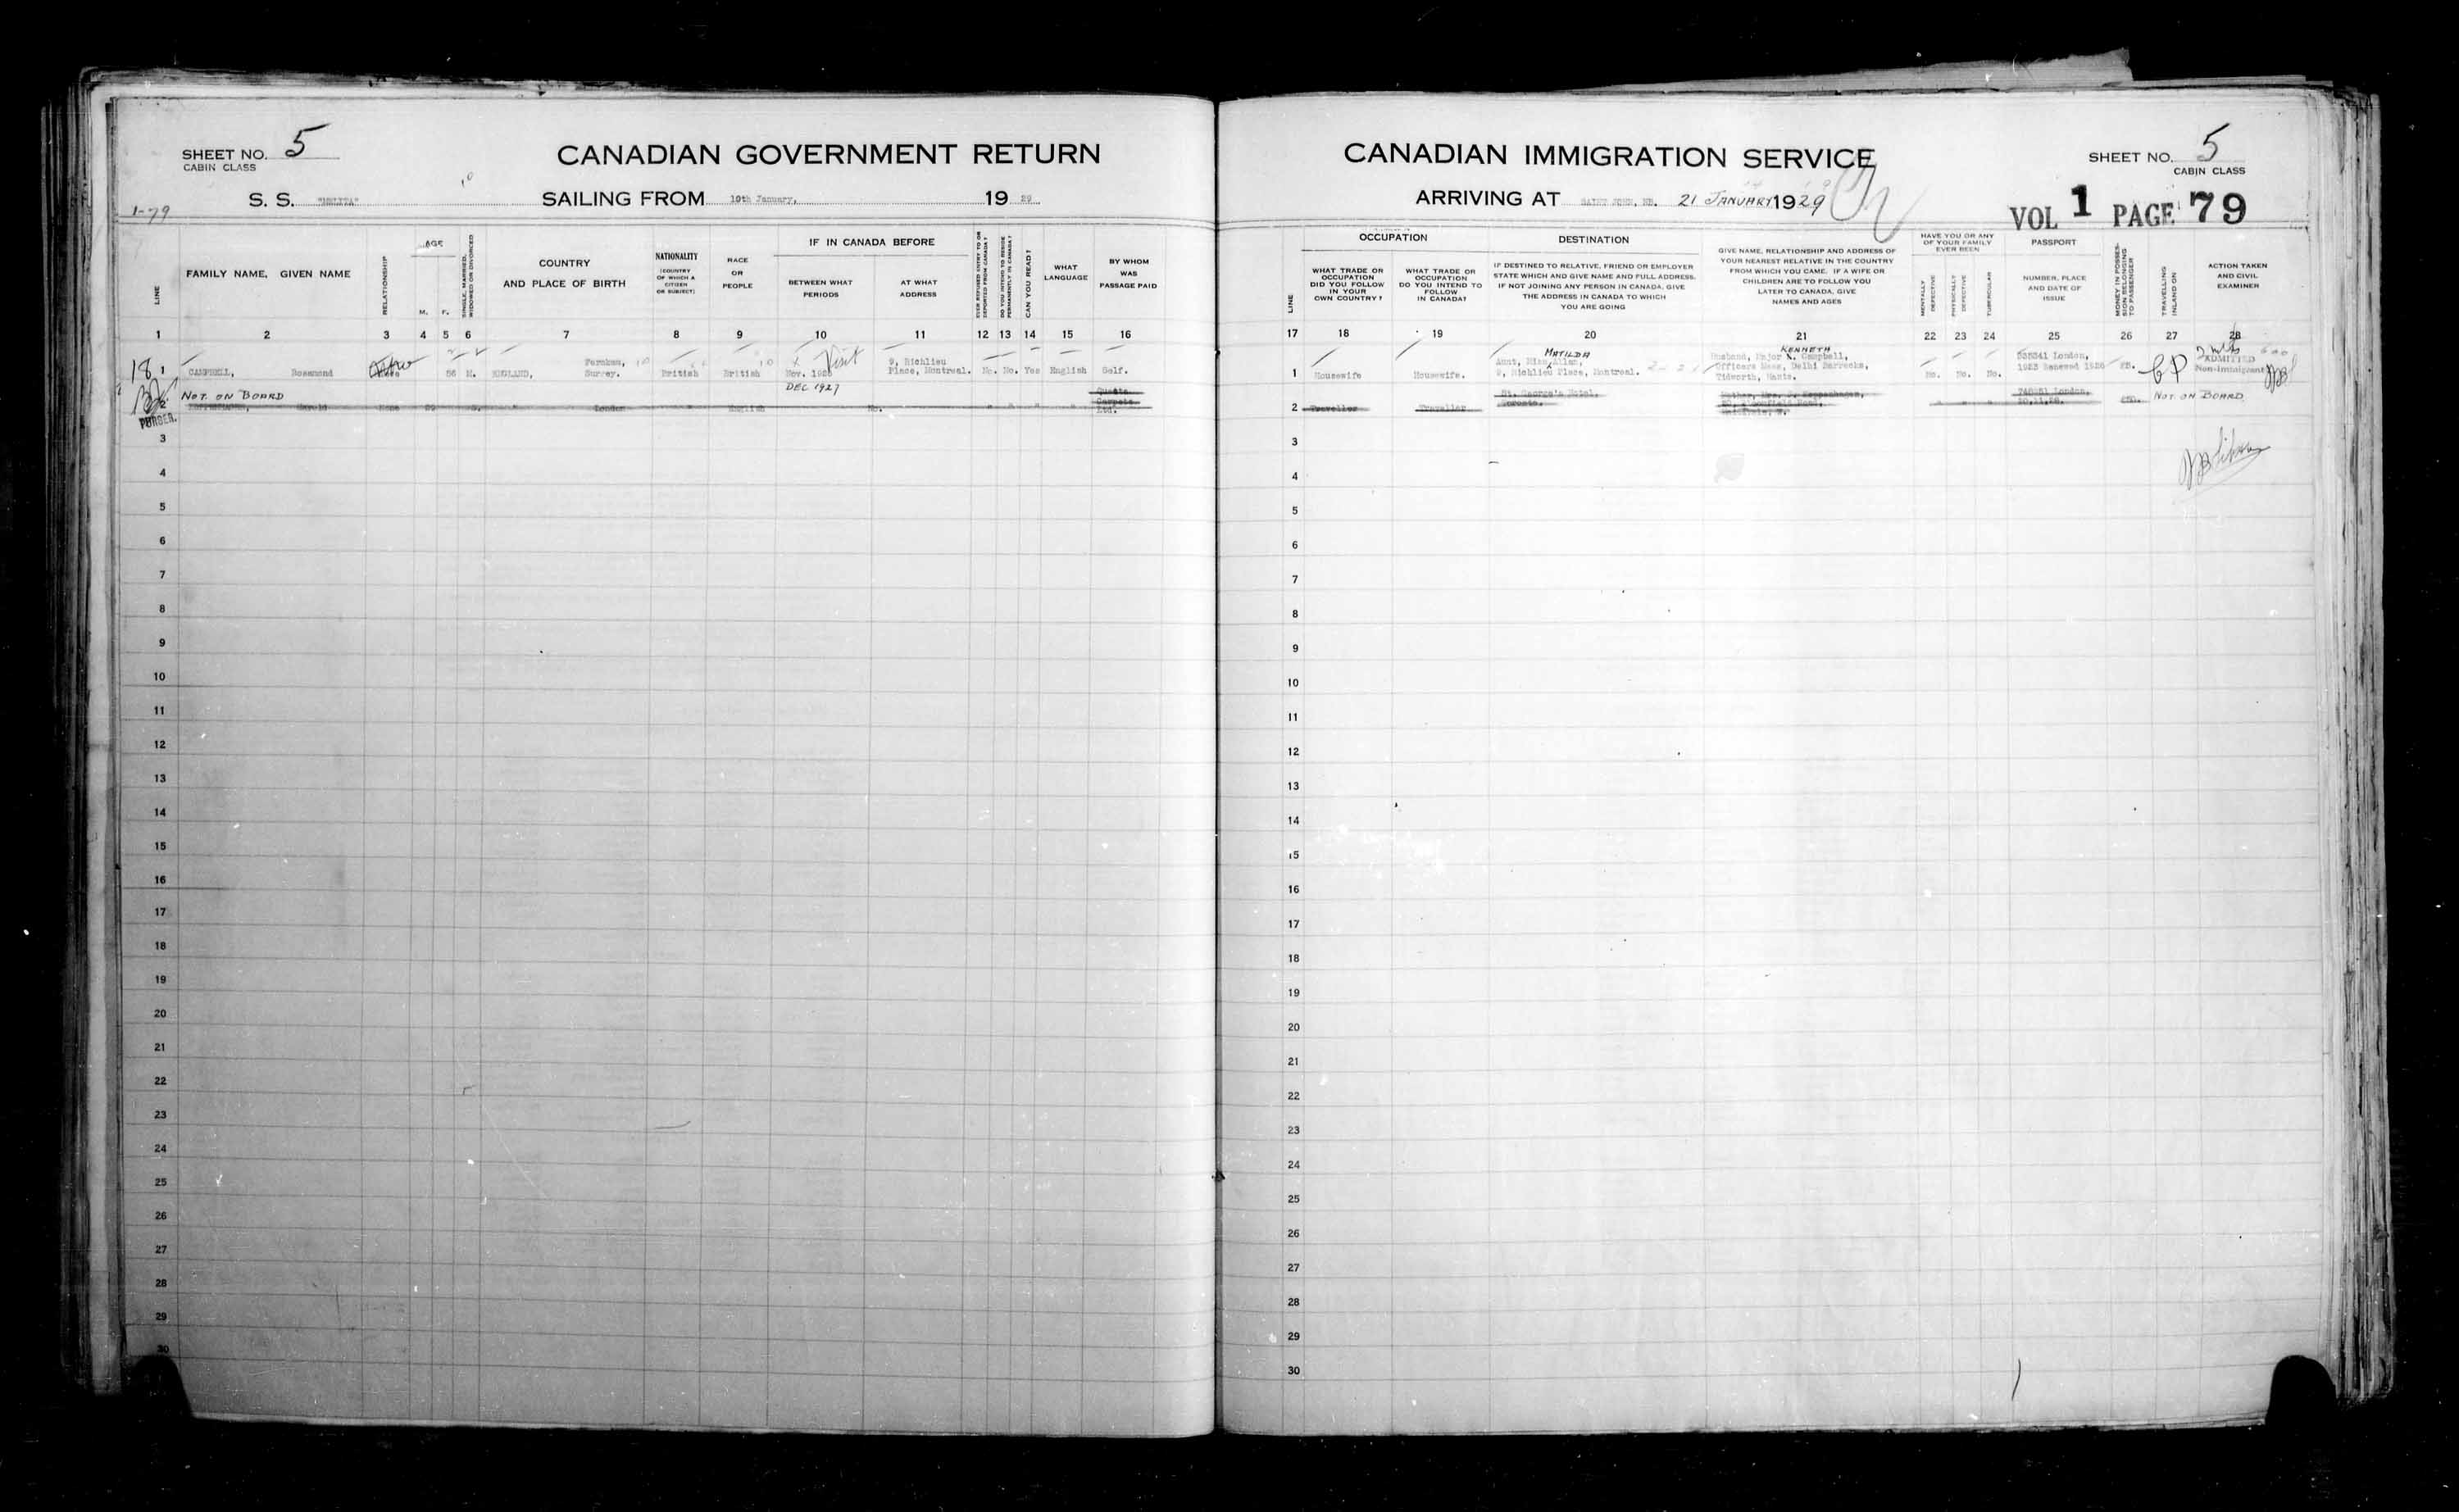 Title: Passenger Lists: Saint John (1925-1935) - Mikan Number: 134836 - Microform: t-14853